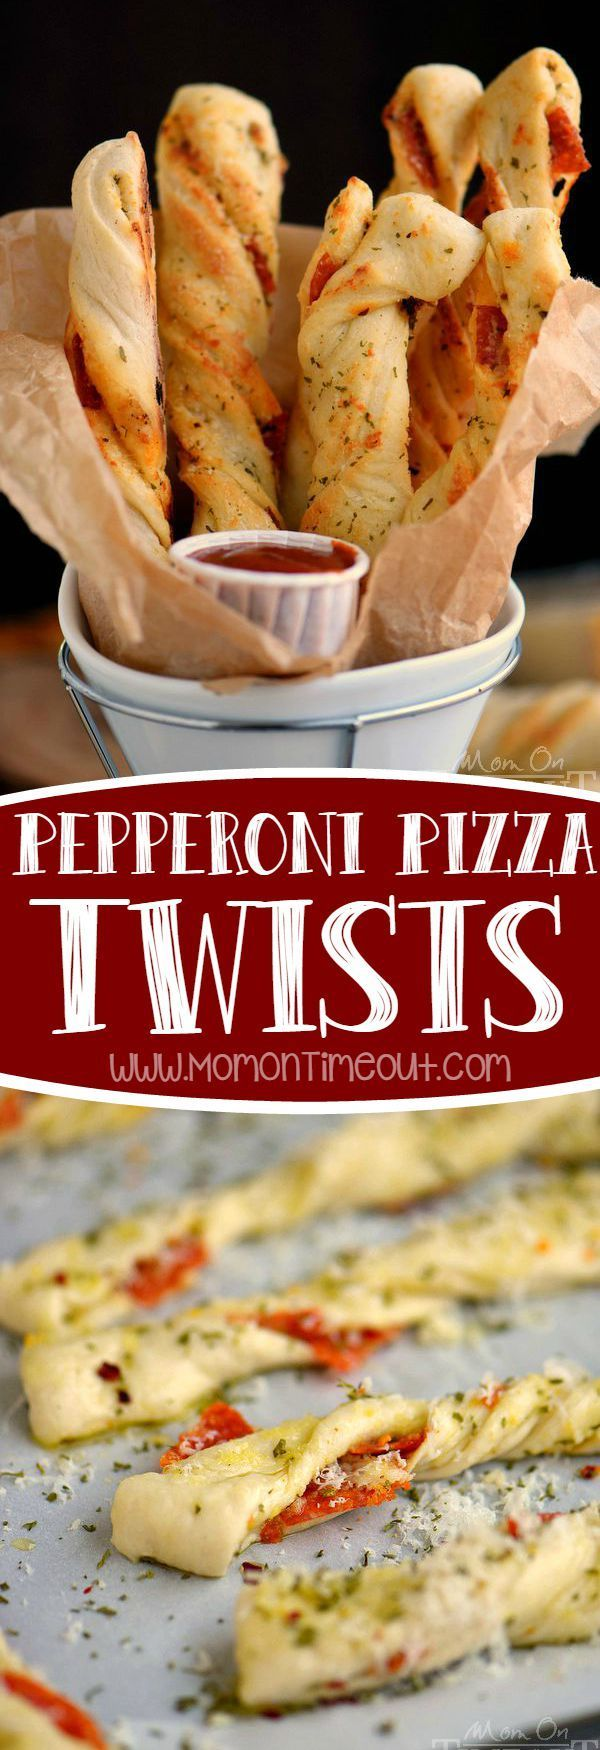 "Pepperoni Pizza with a ""TWIST'! These are easy to make and taste great."